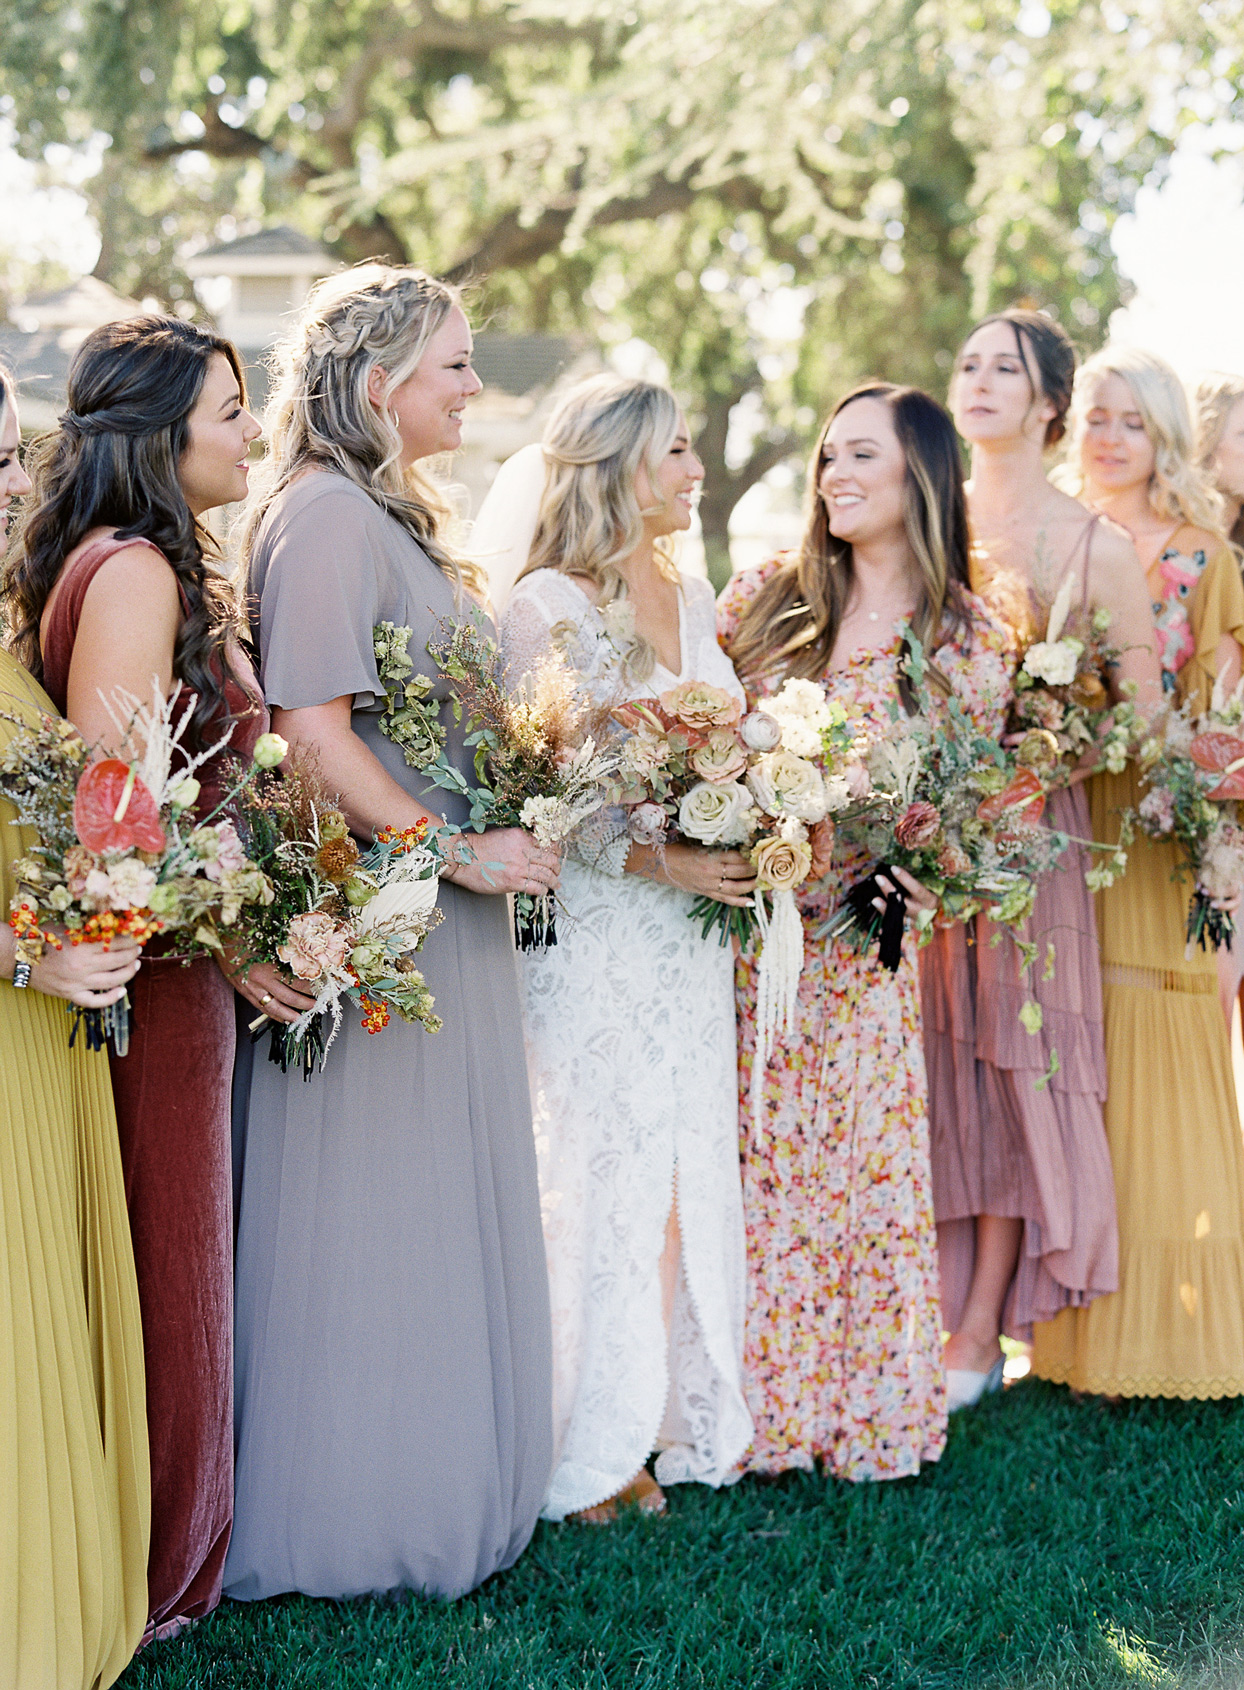 bride posing with bridesmaids in mismatched dresses